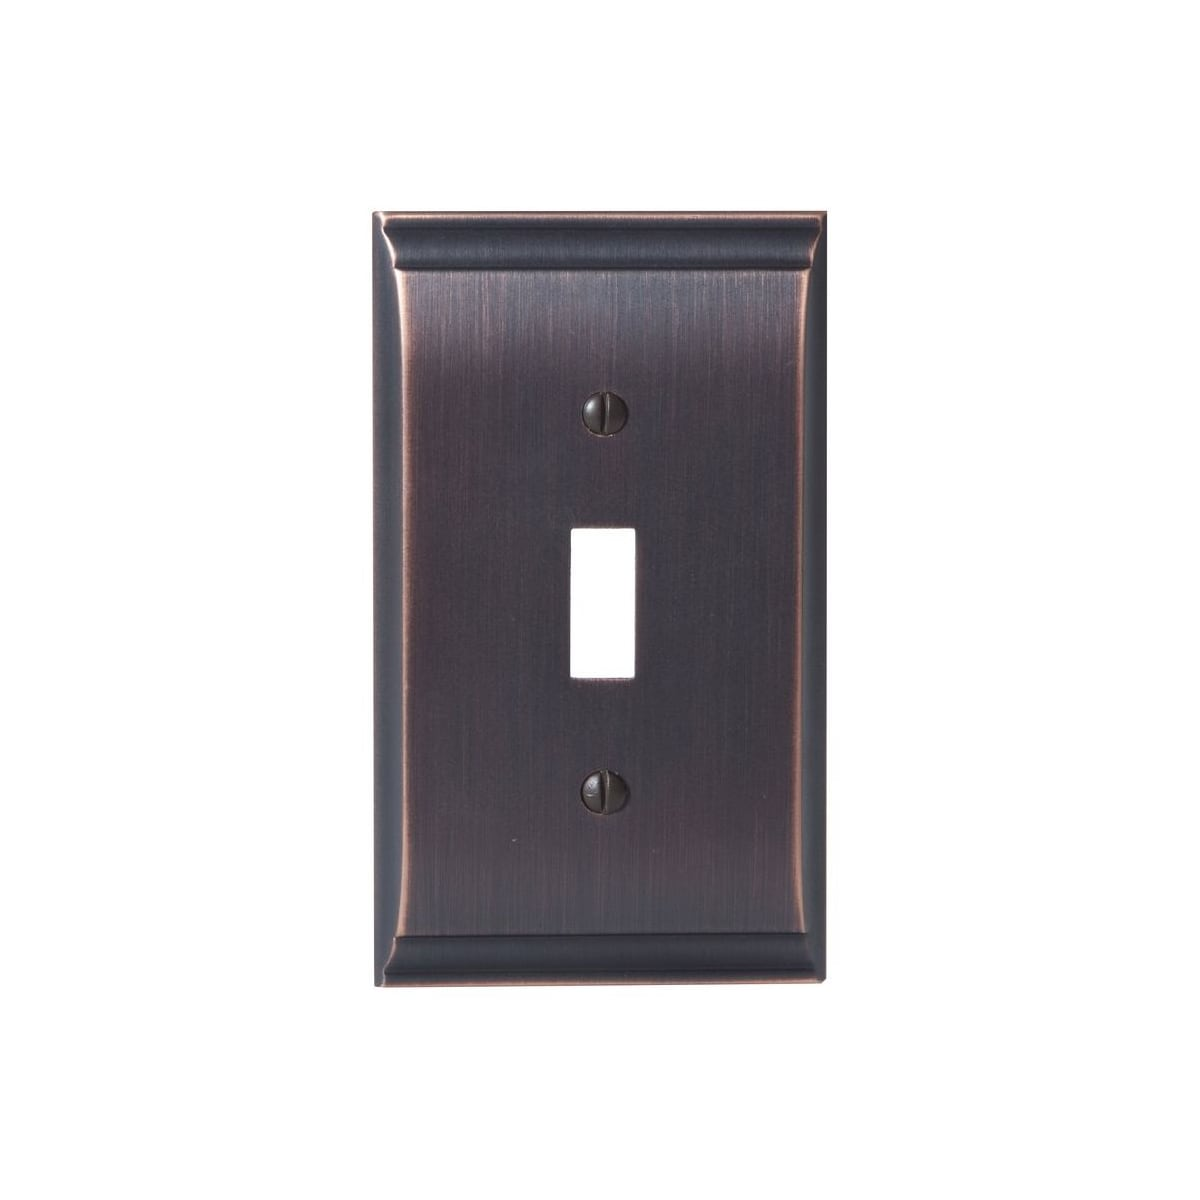 Amerock Bp36500orb Oil Rubbed Bronze Candler Single Toggle Switch Plate Pullsdirect Com